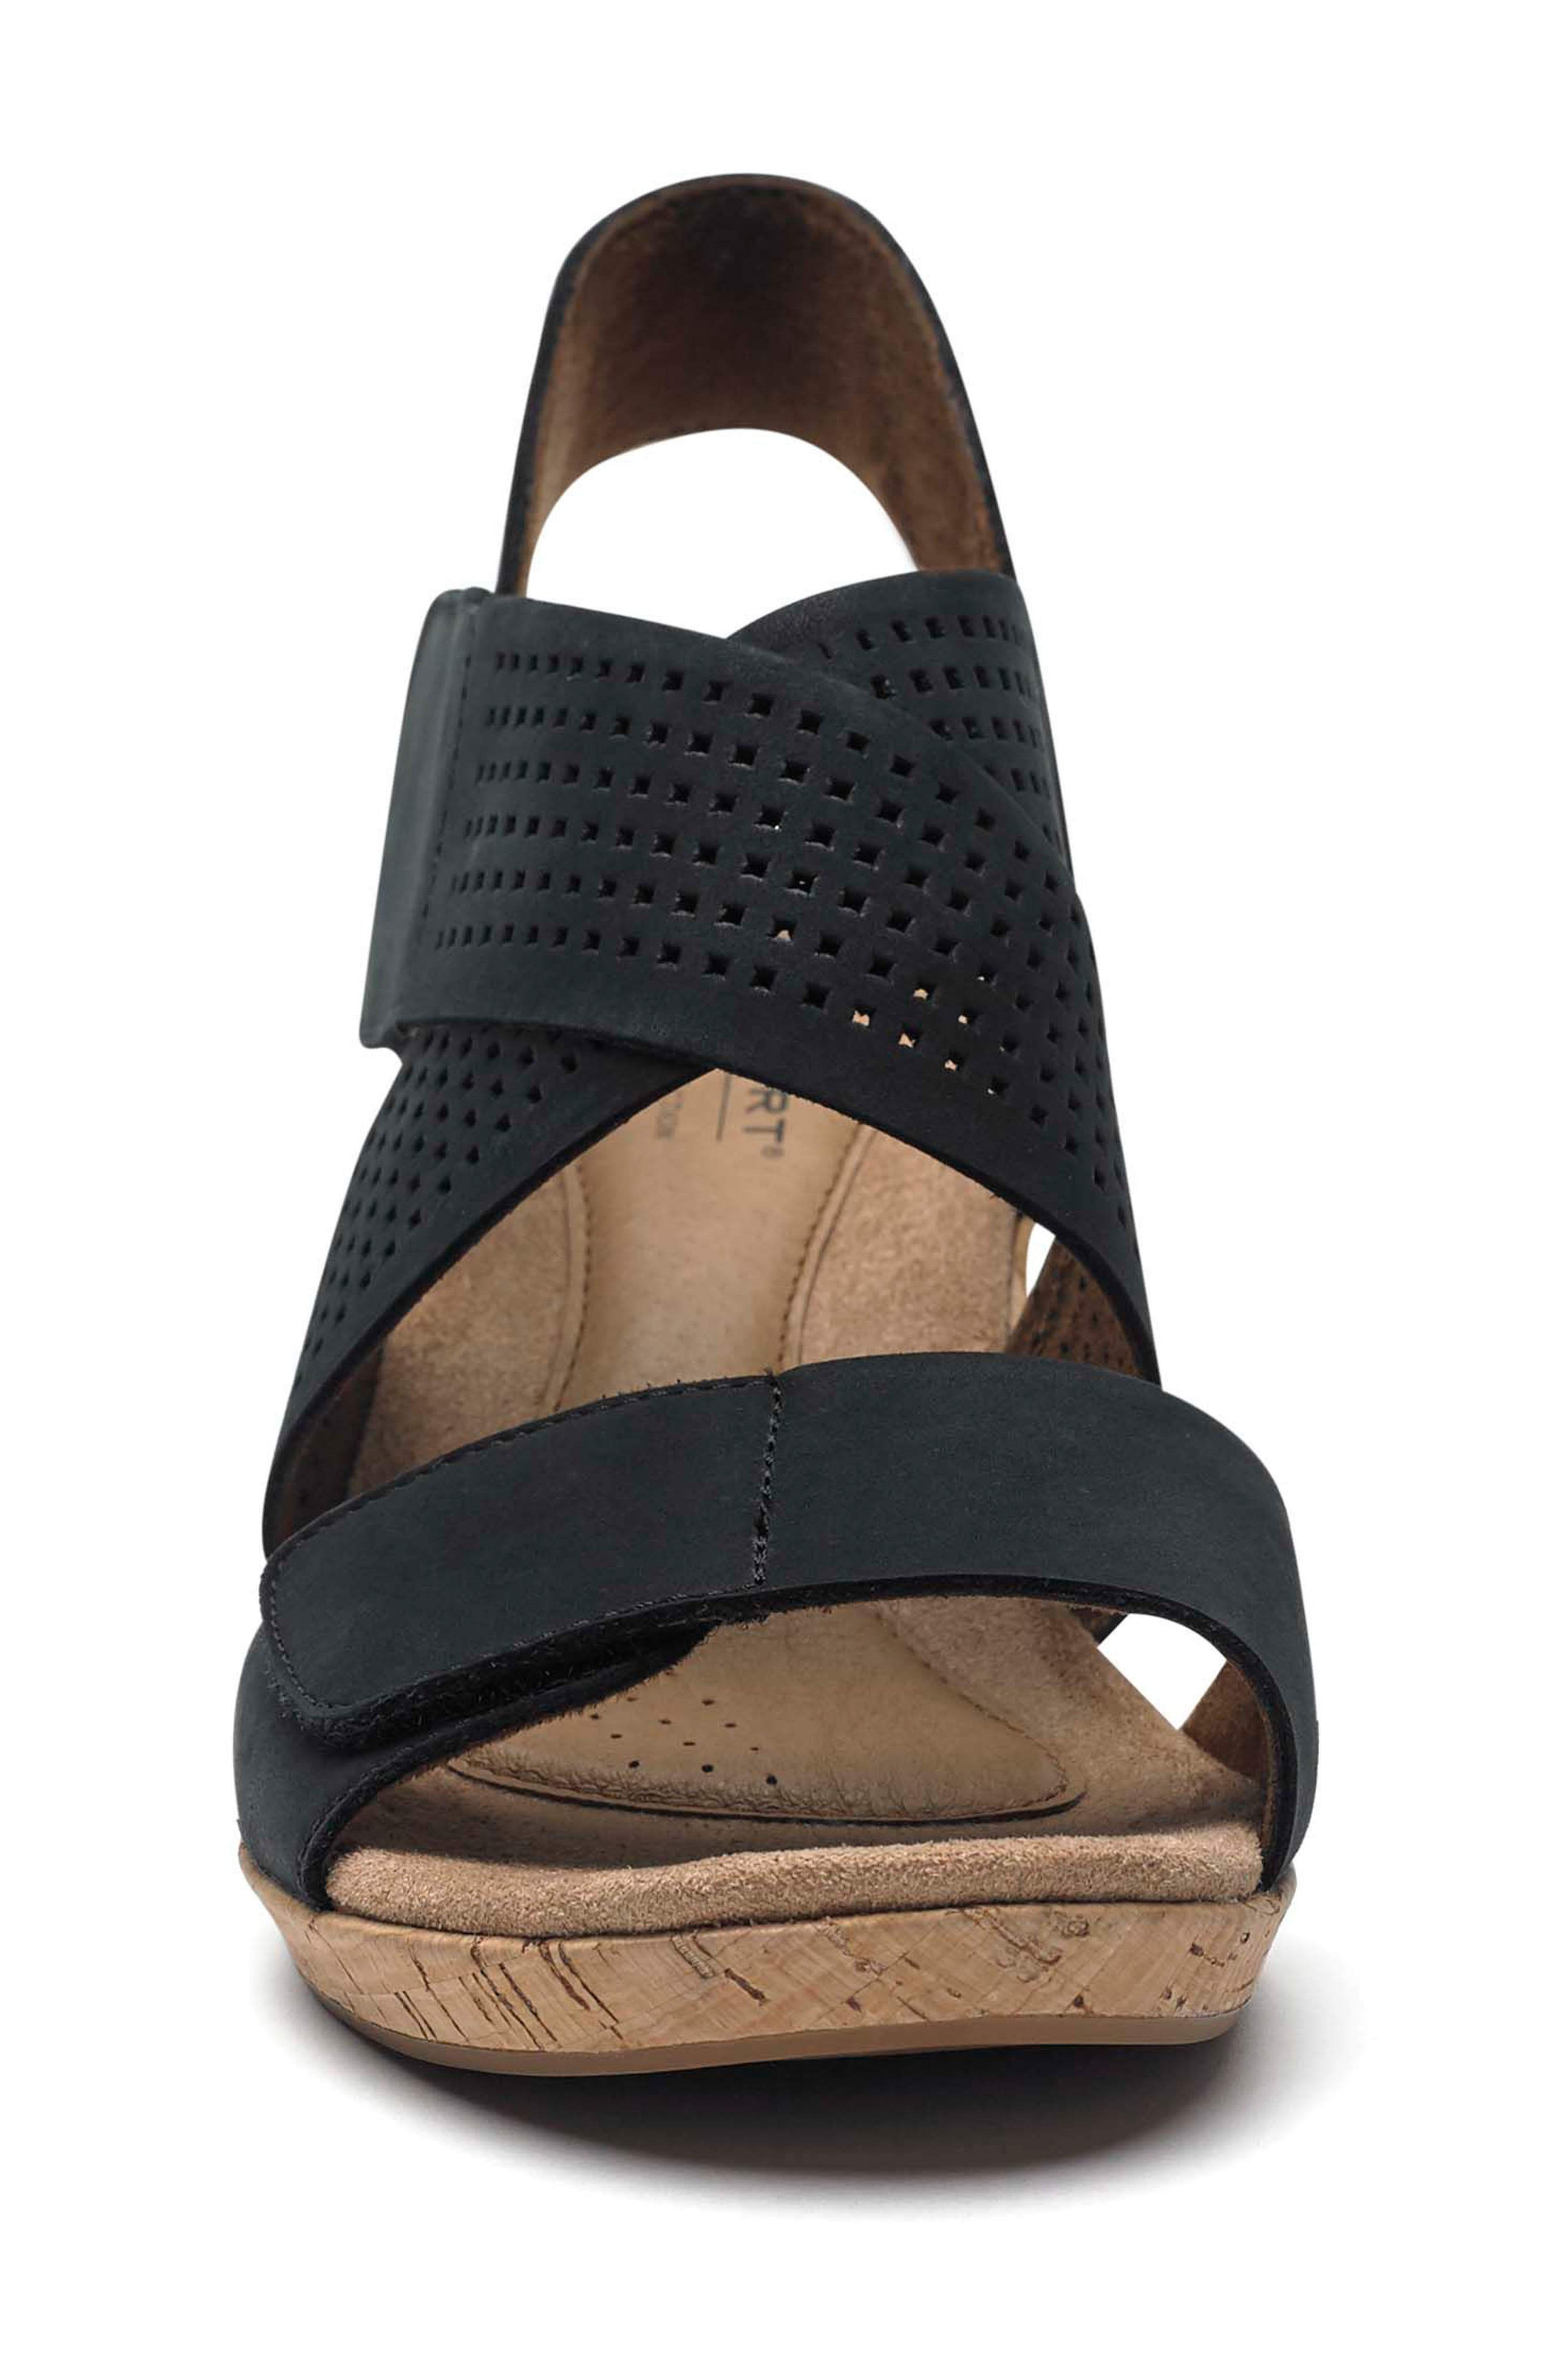 Janna Cross Strap Wedge Sandal,                             Alternate thumbnail 4, color,                             001